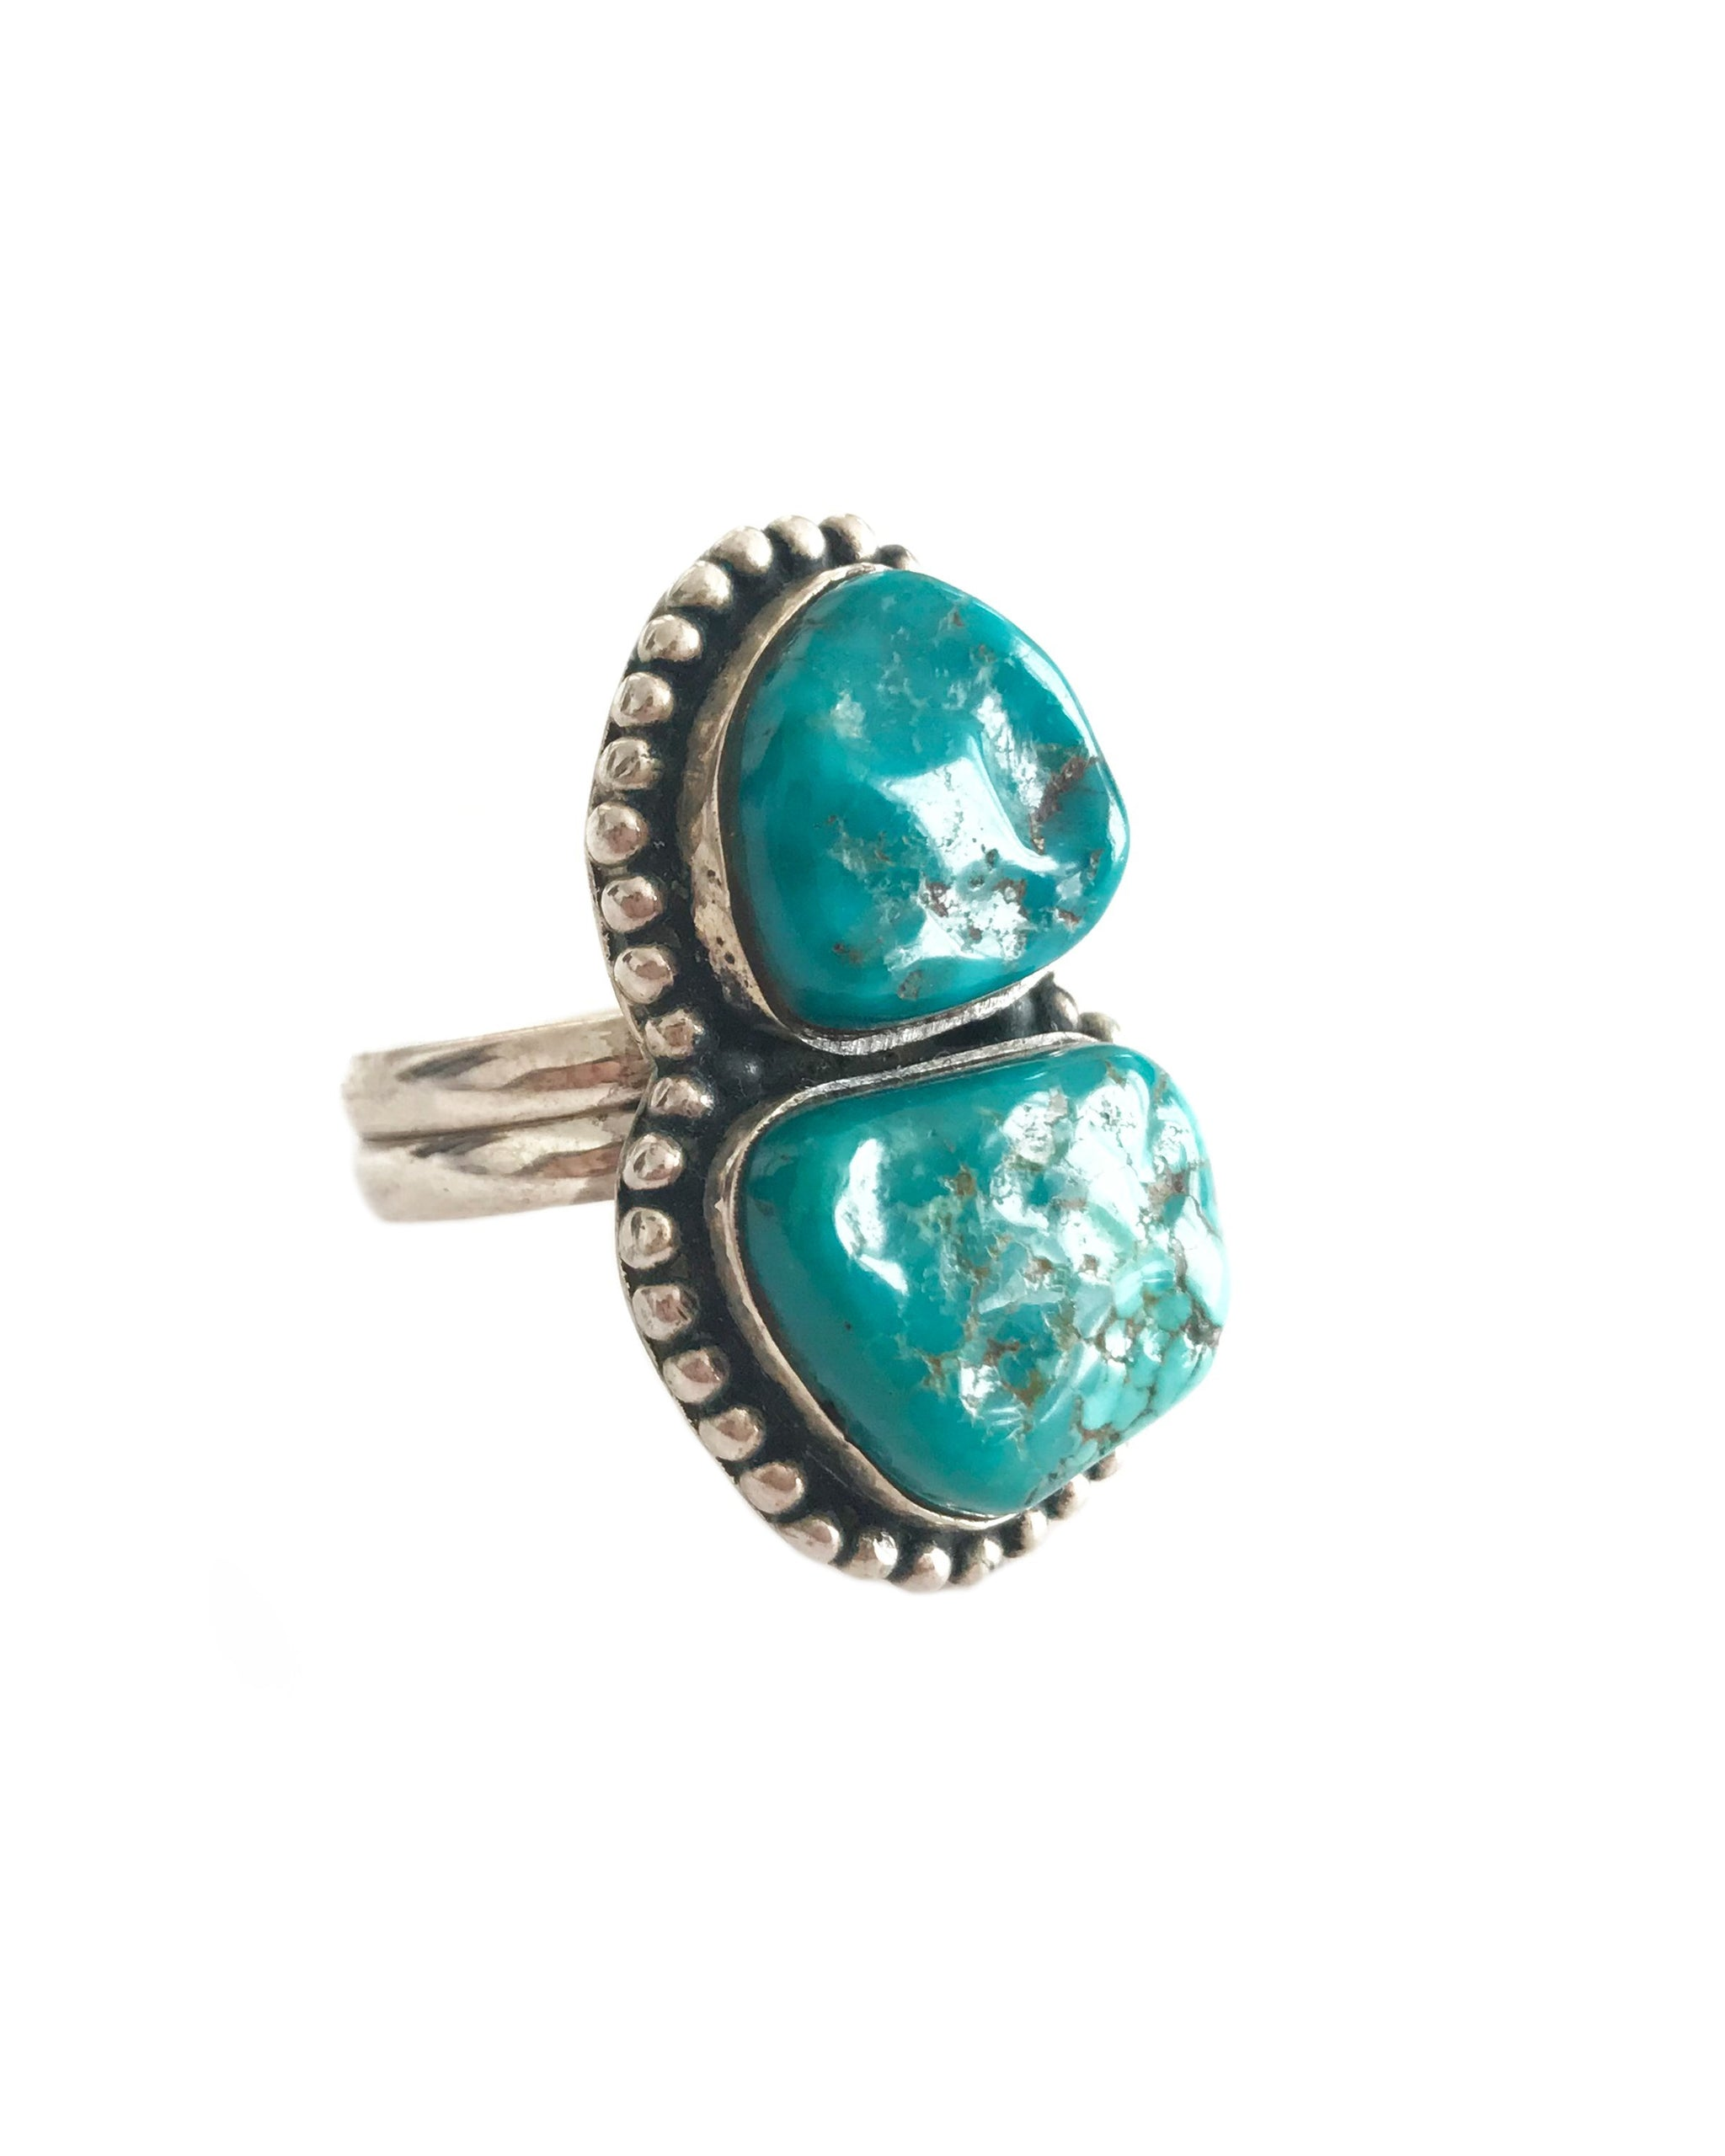 VINTAGE MOUNTAIN RING - TURQUOISE + TOBACCO